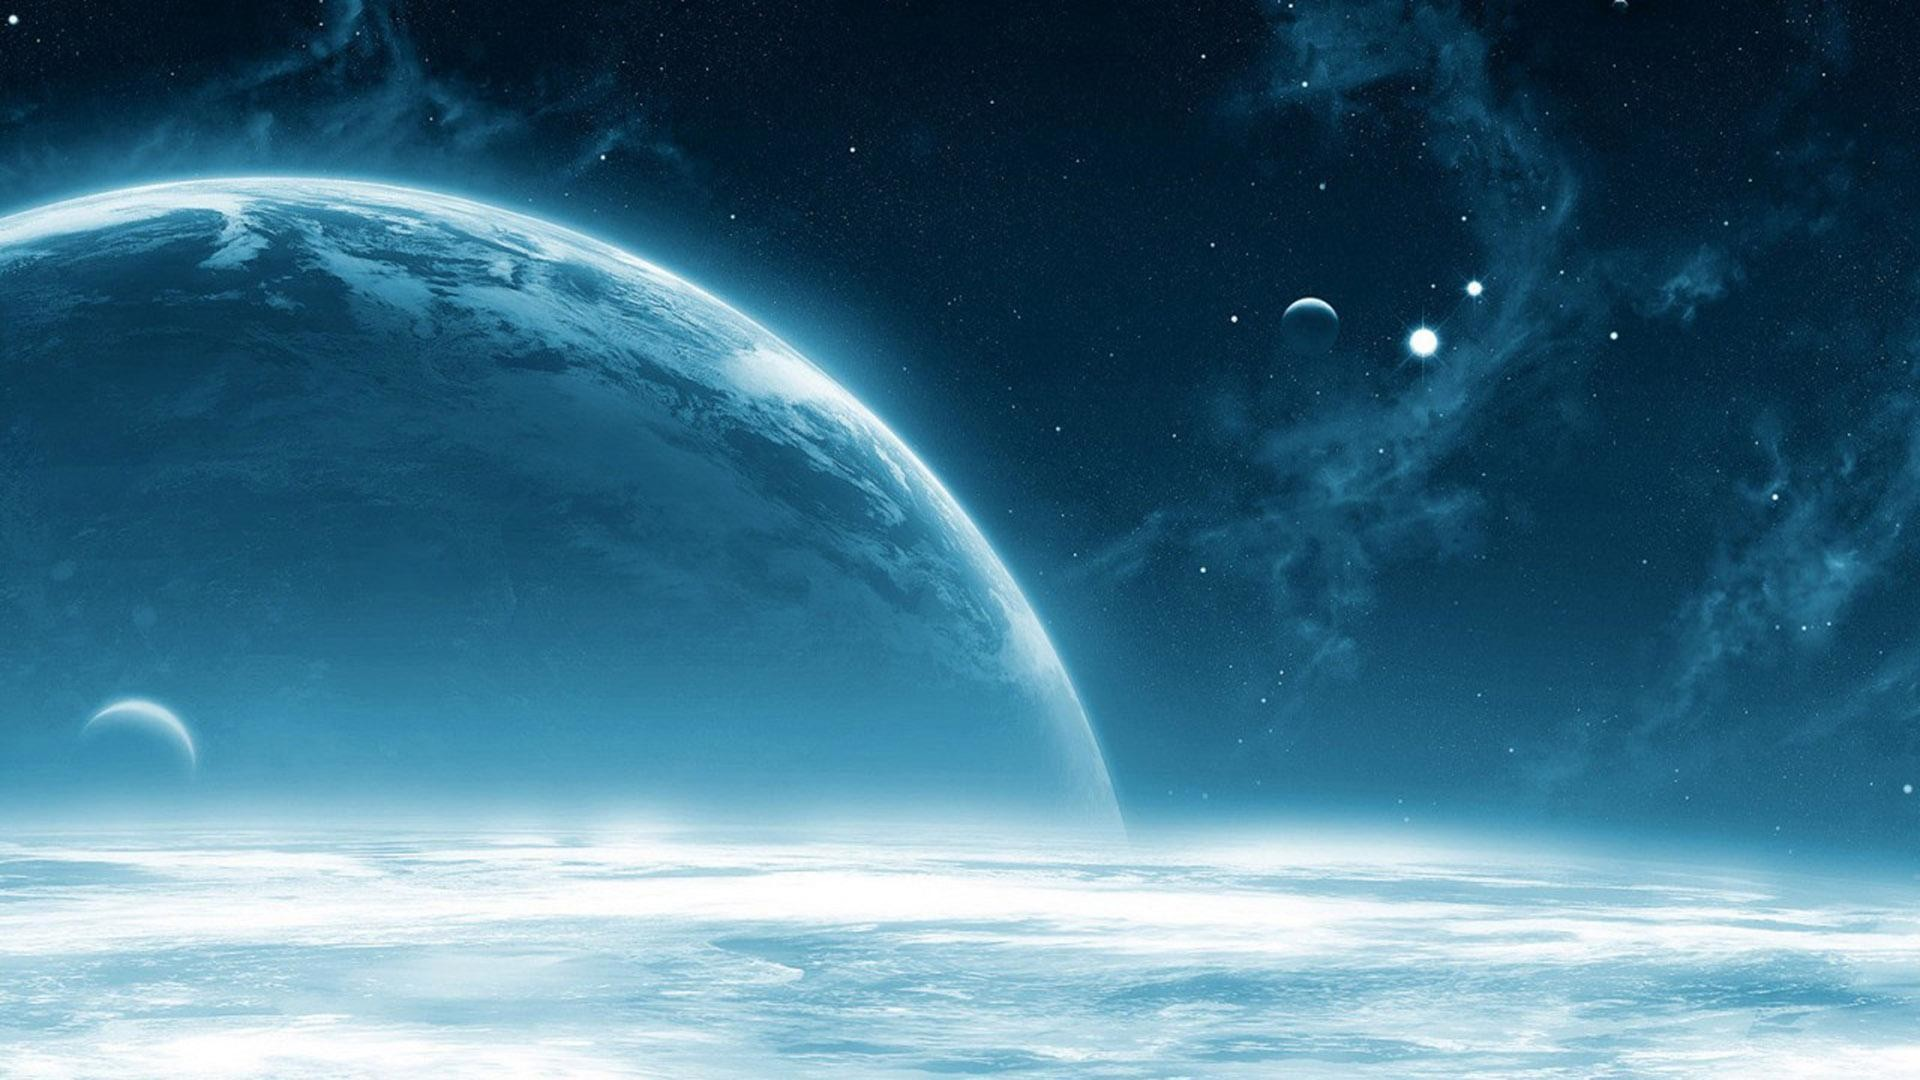 desktop wallpaper space ·①